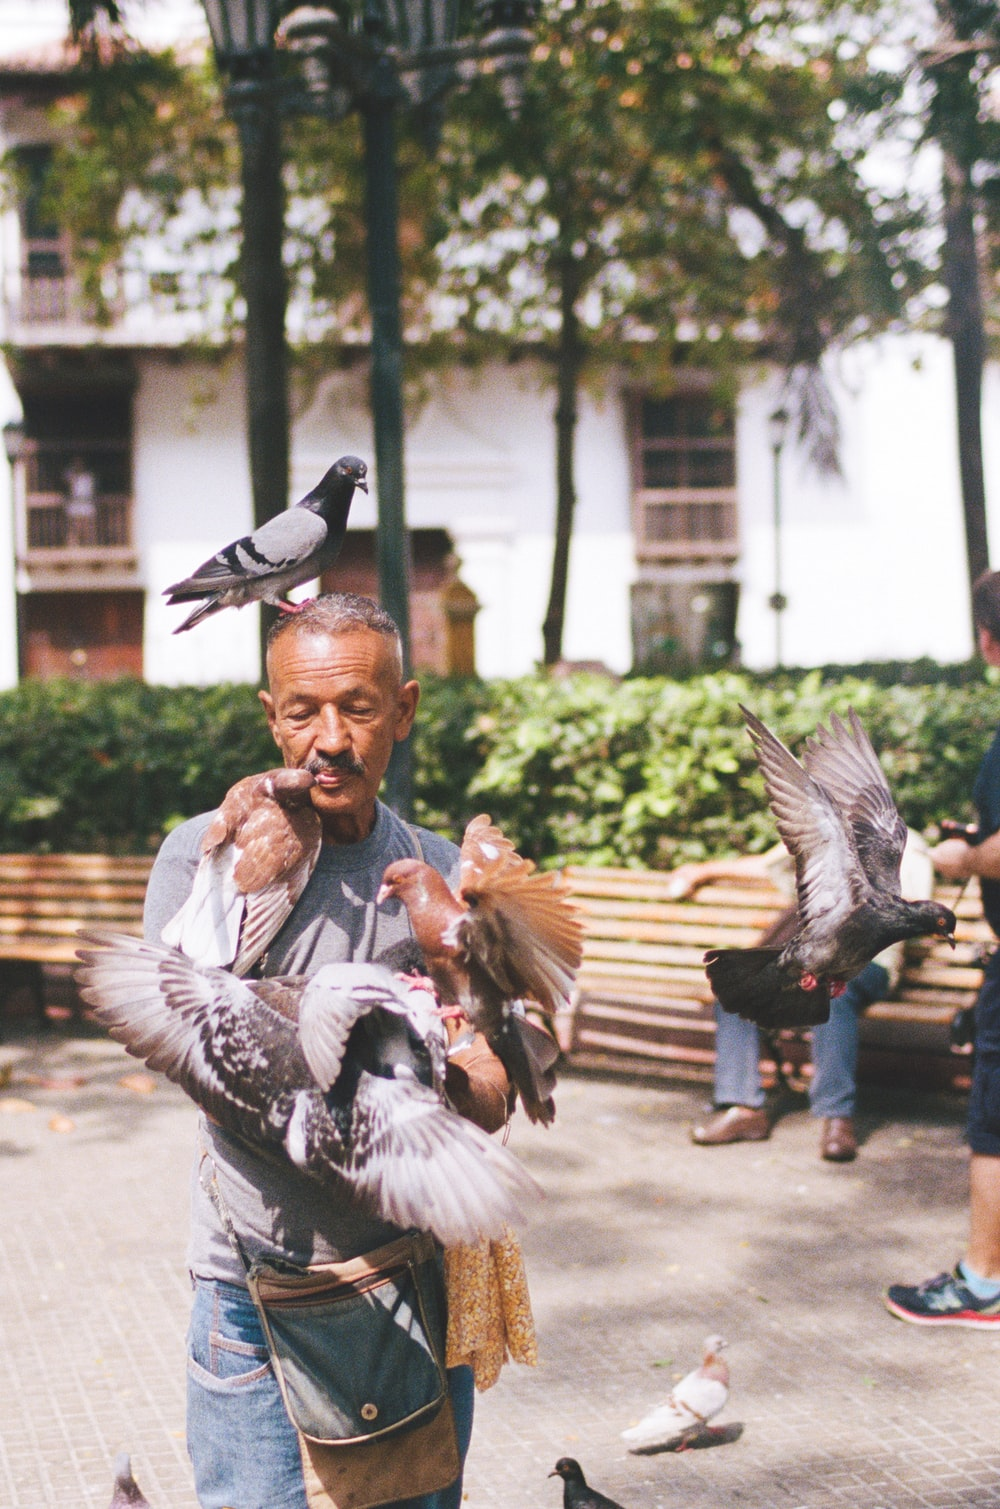 man playing with birds